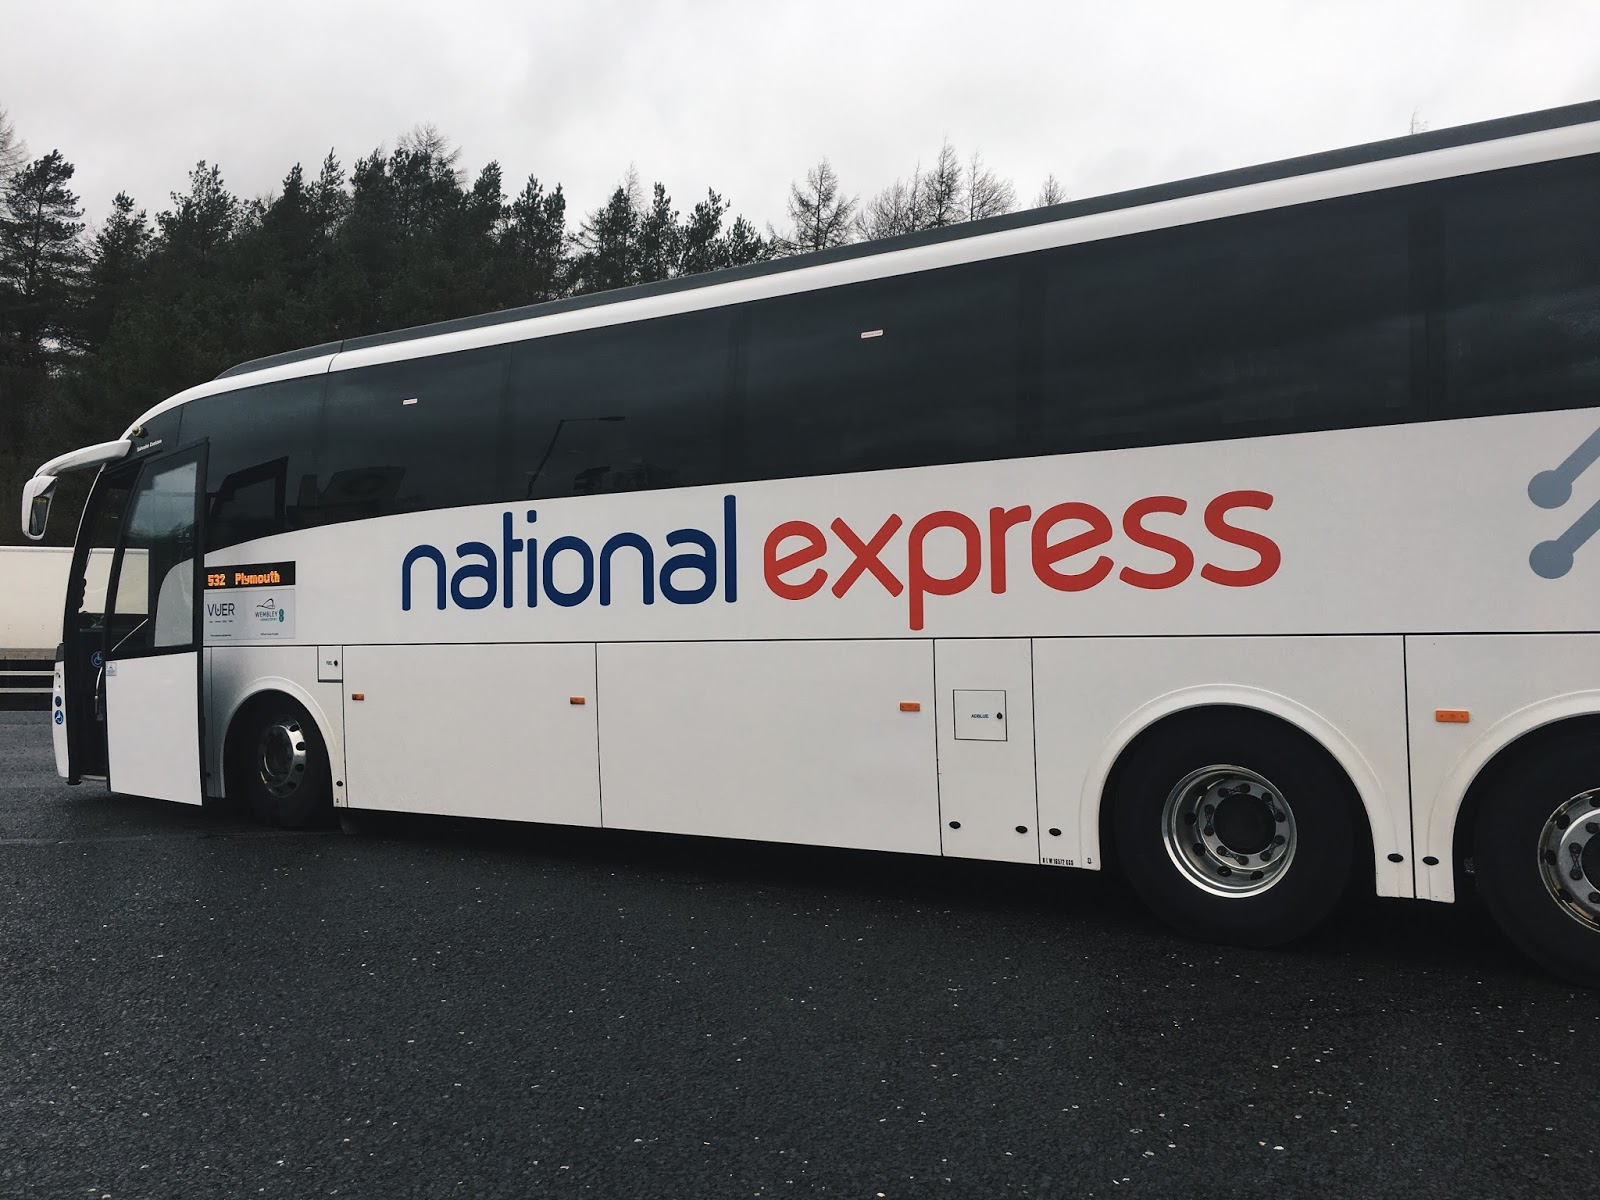 national express coach